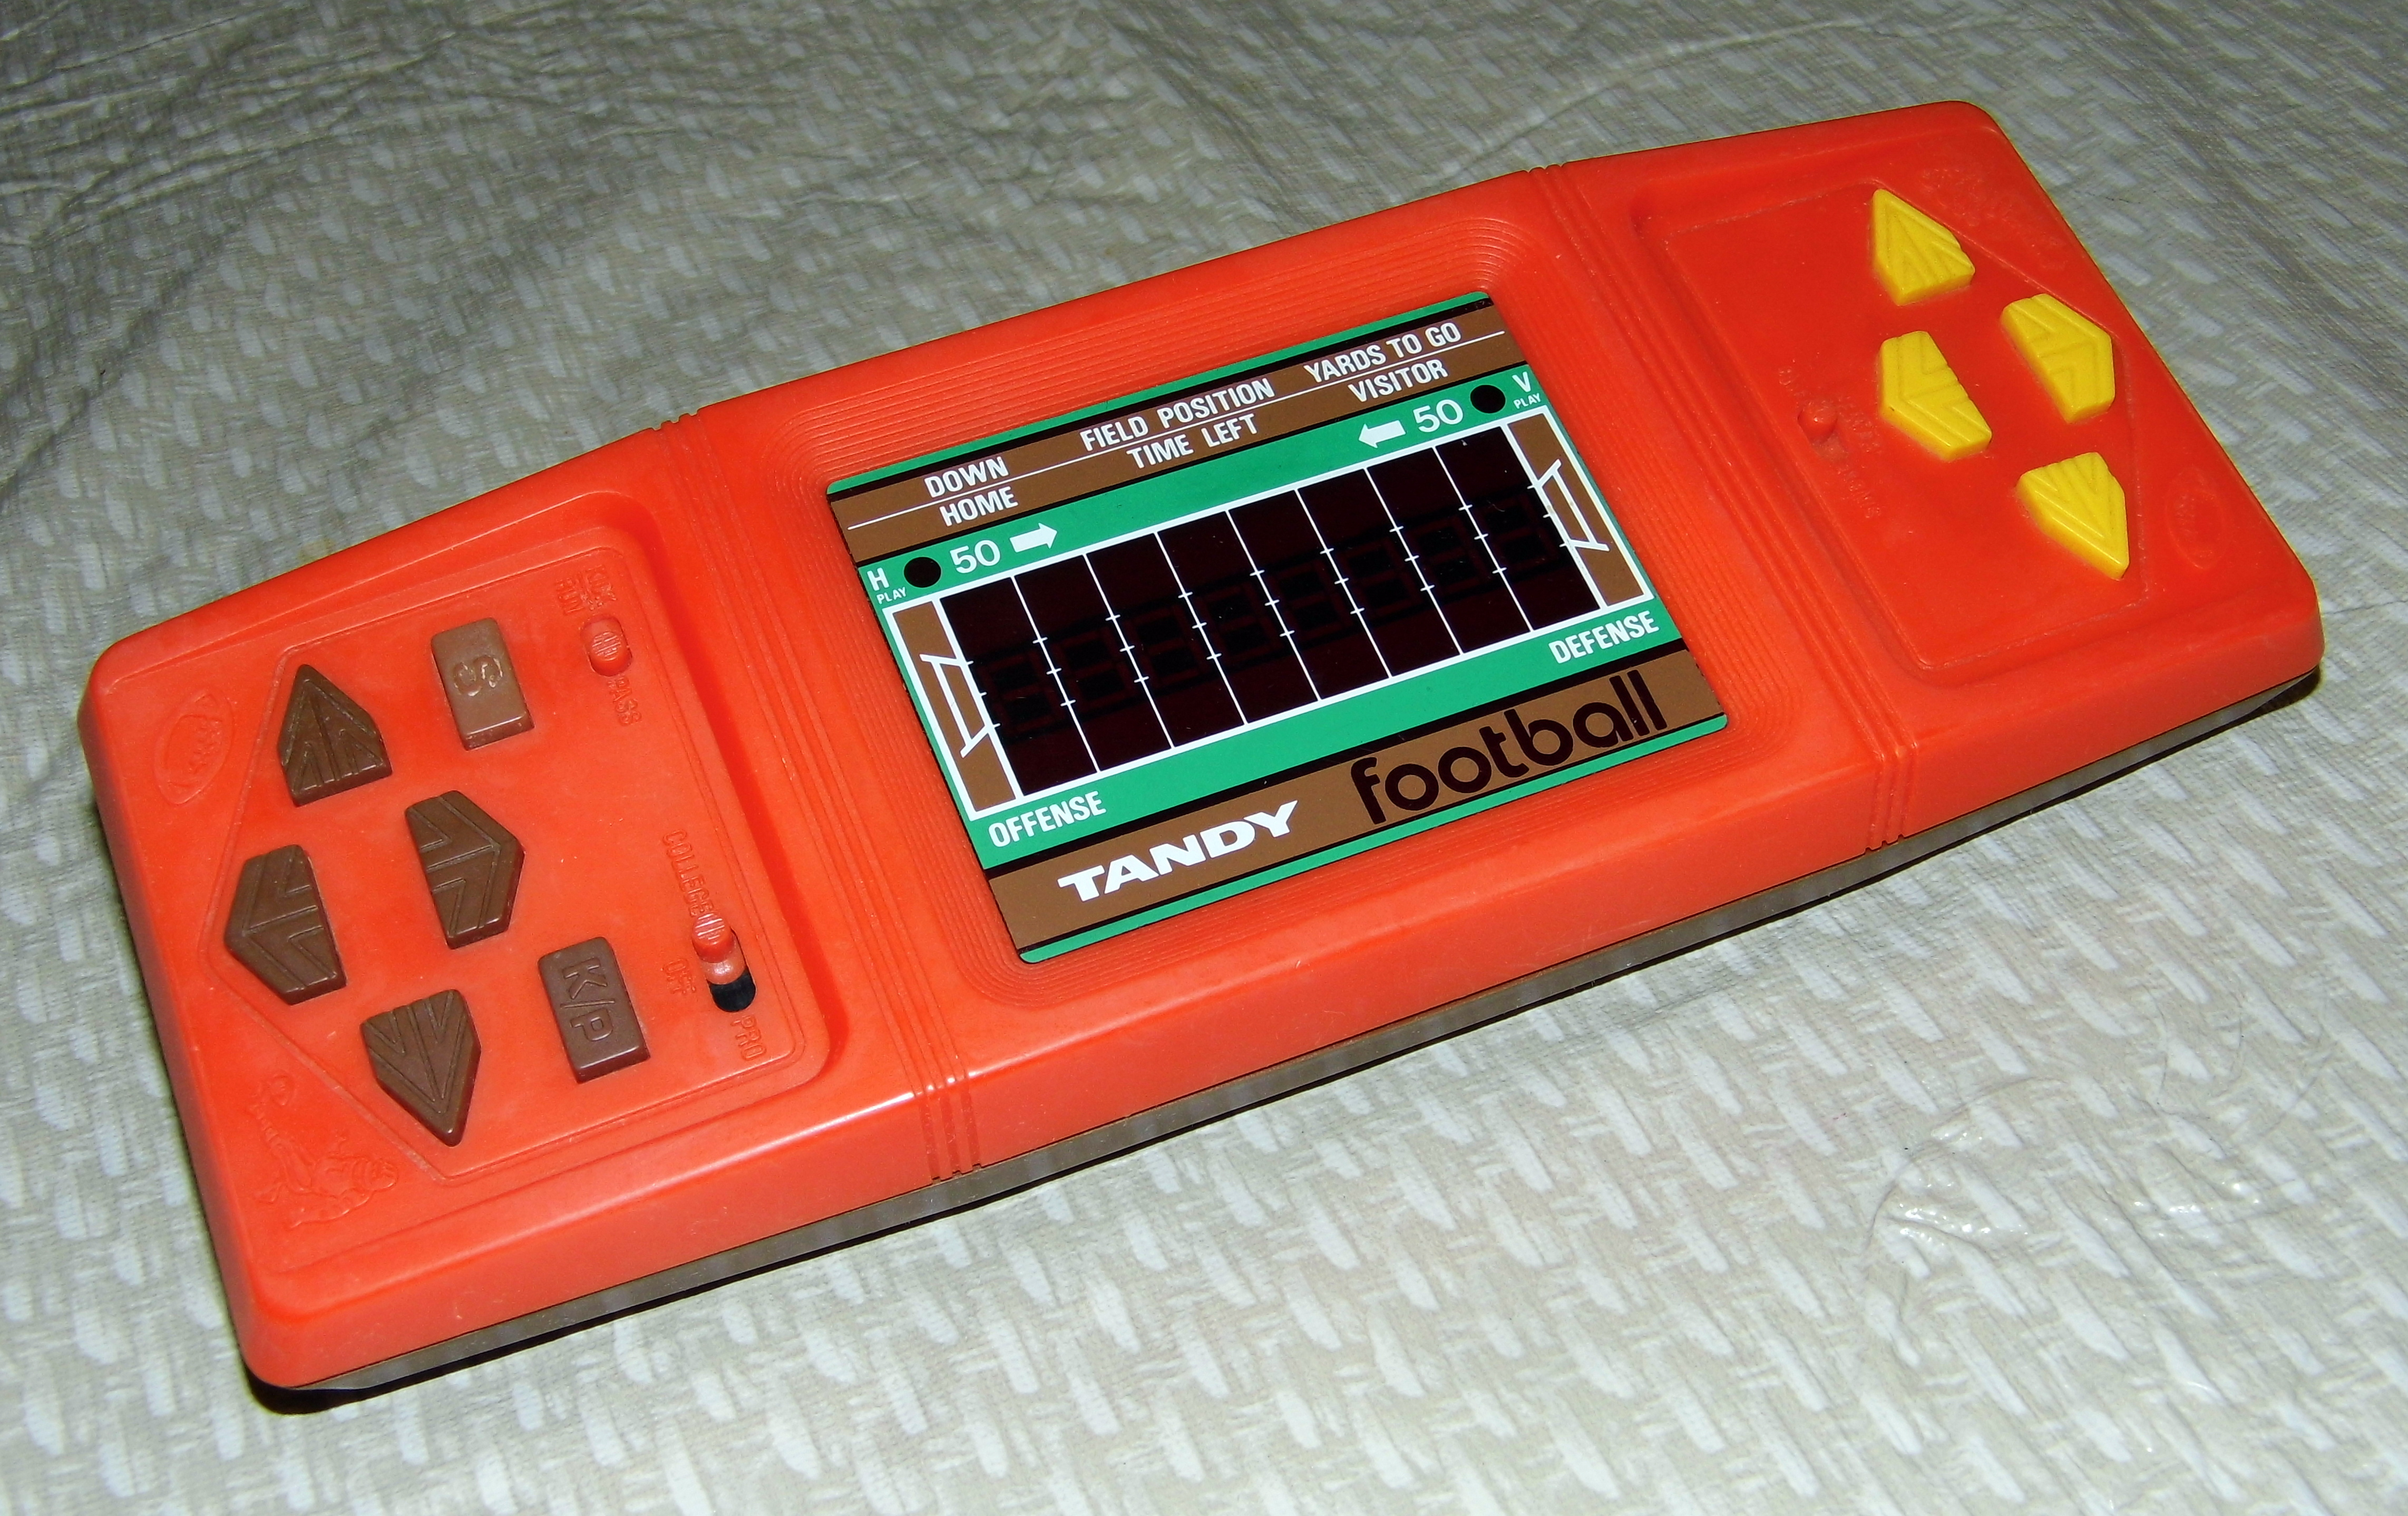 Vintage Arcade Games >> File:Tandy 2-Player Football, Made in Hong Kong, Sold by Radio Shack, Circa 1980s (LED Handheld ...